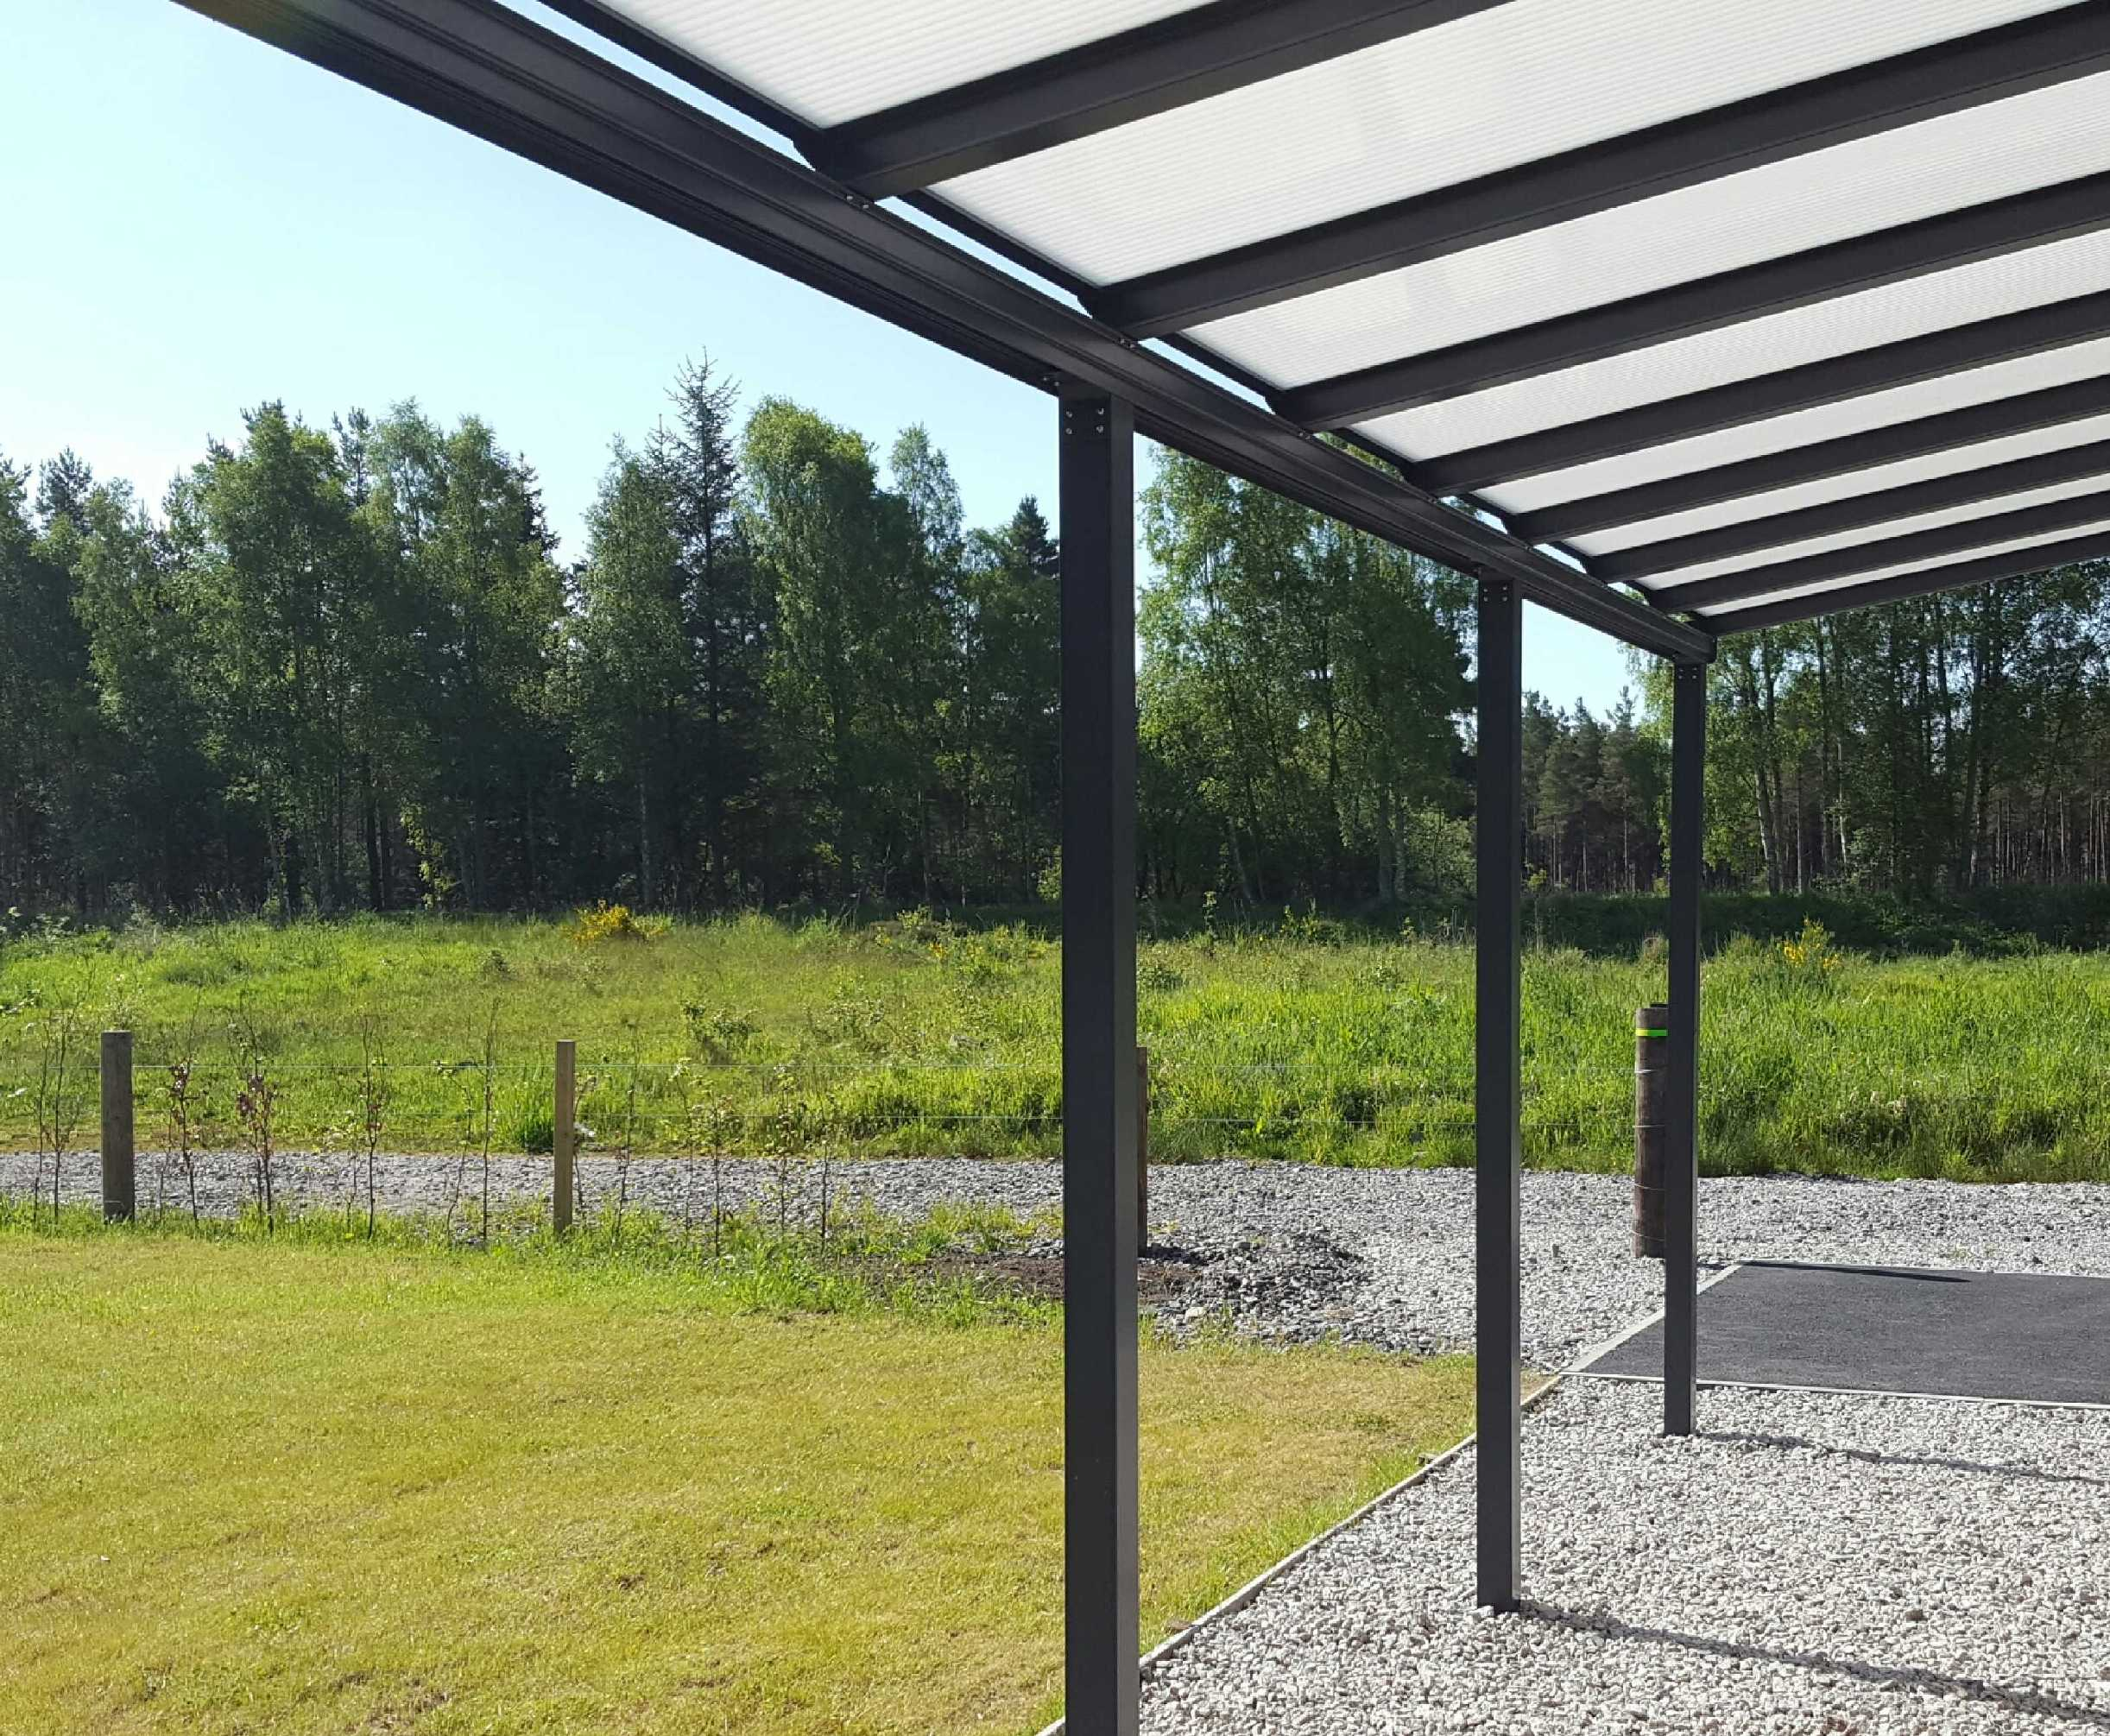 Omega Smart Lean-To Canopy, Anthracite Grey, 16mm Polycarbonate Glazing - 10.6m (W) x 1.5m (P), (5) Supporting Posts